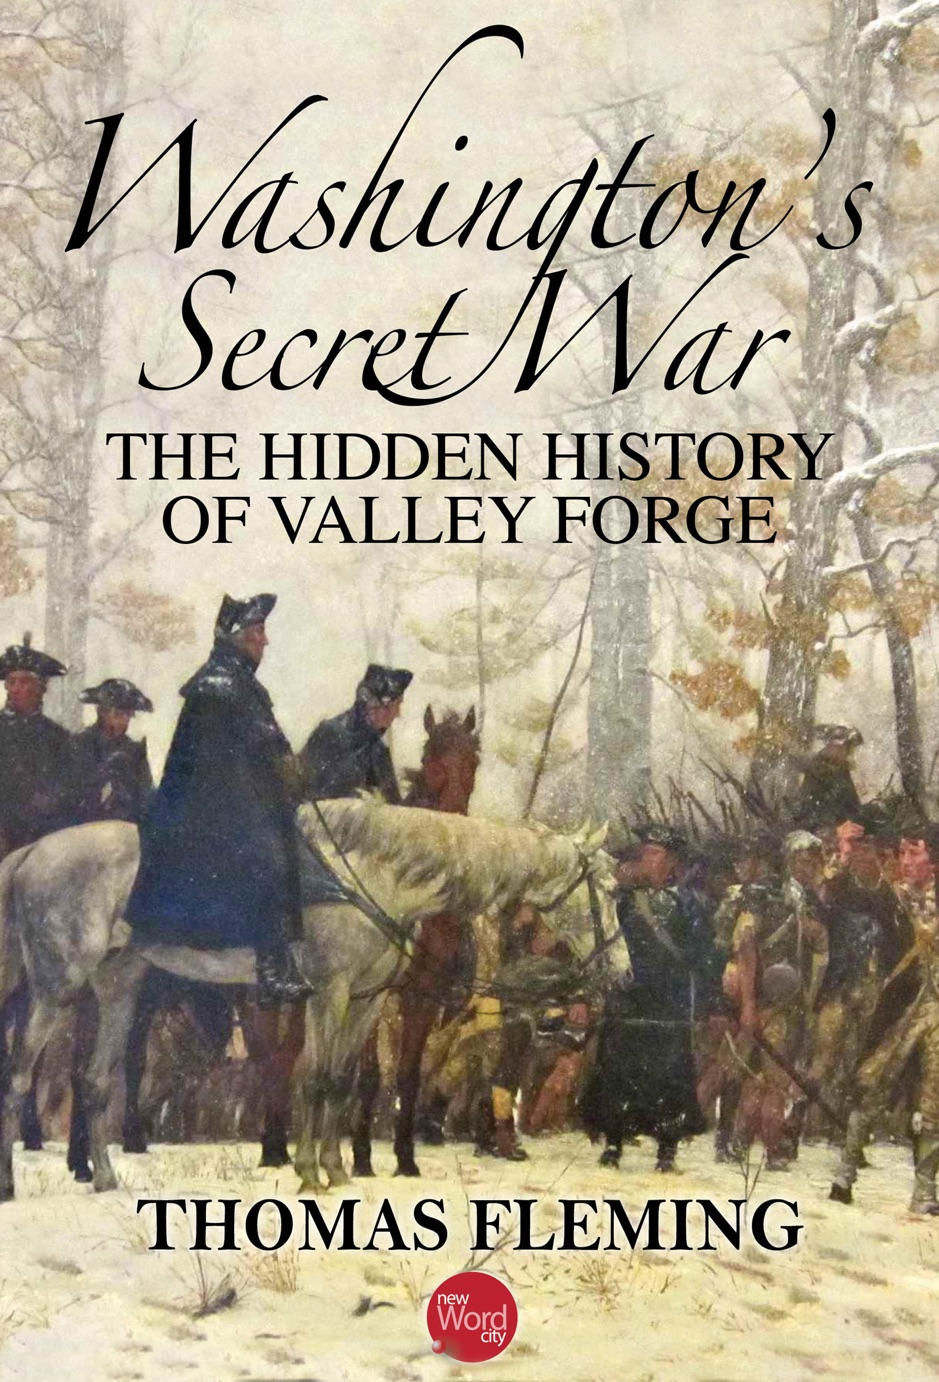 ‎Washington's Secret War: The Hidden History of Valley Forge